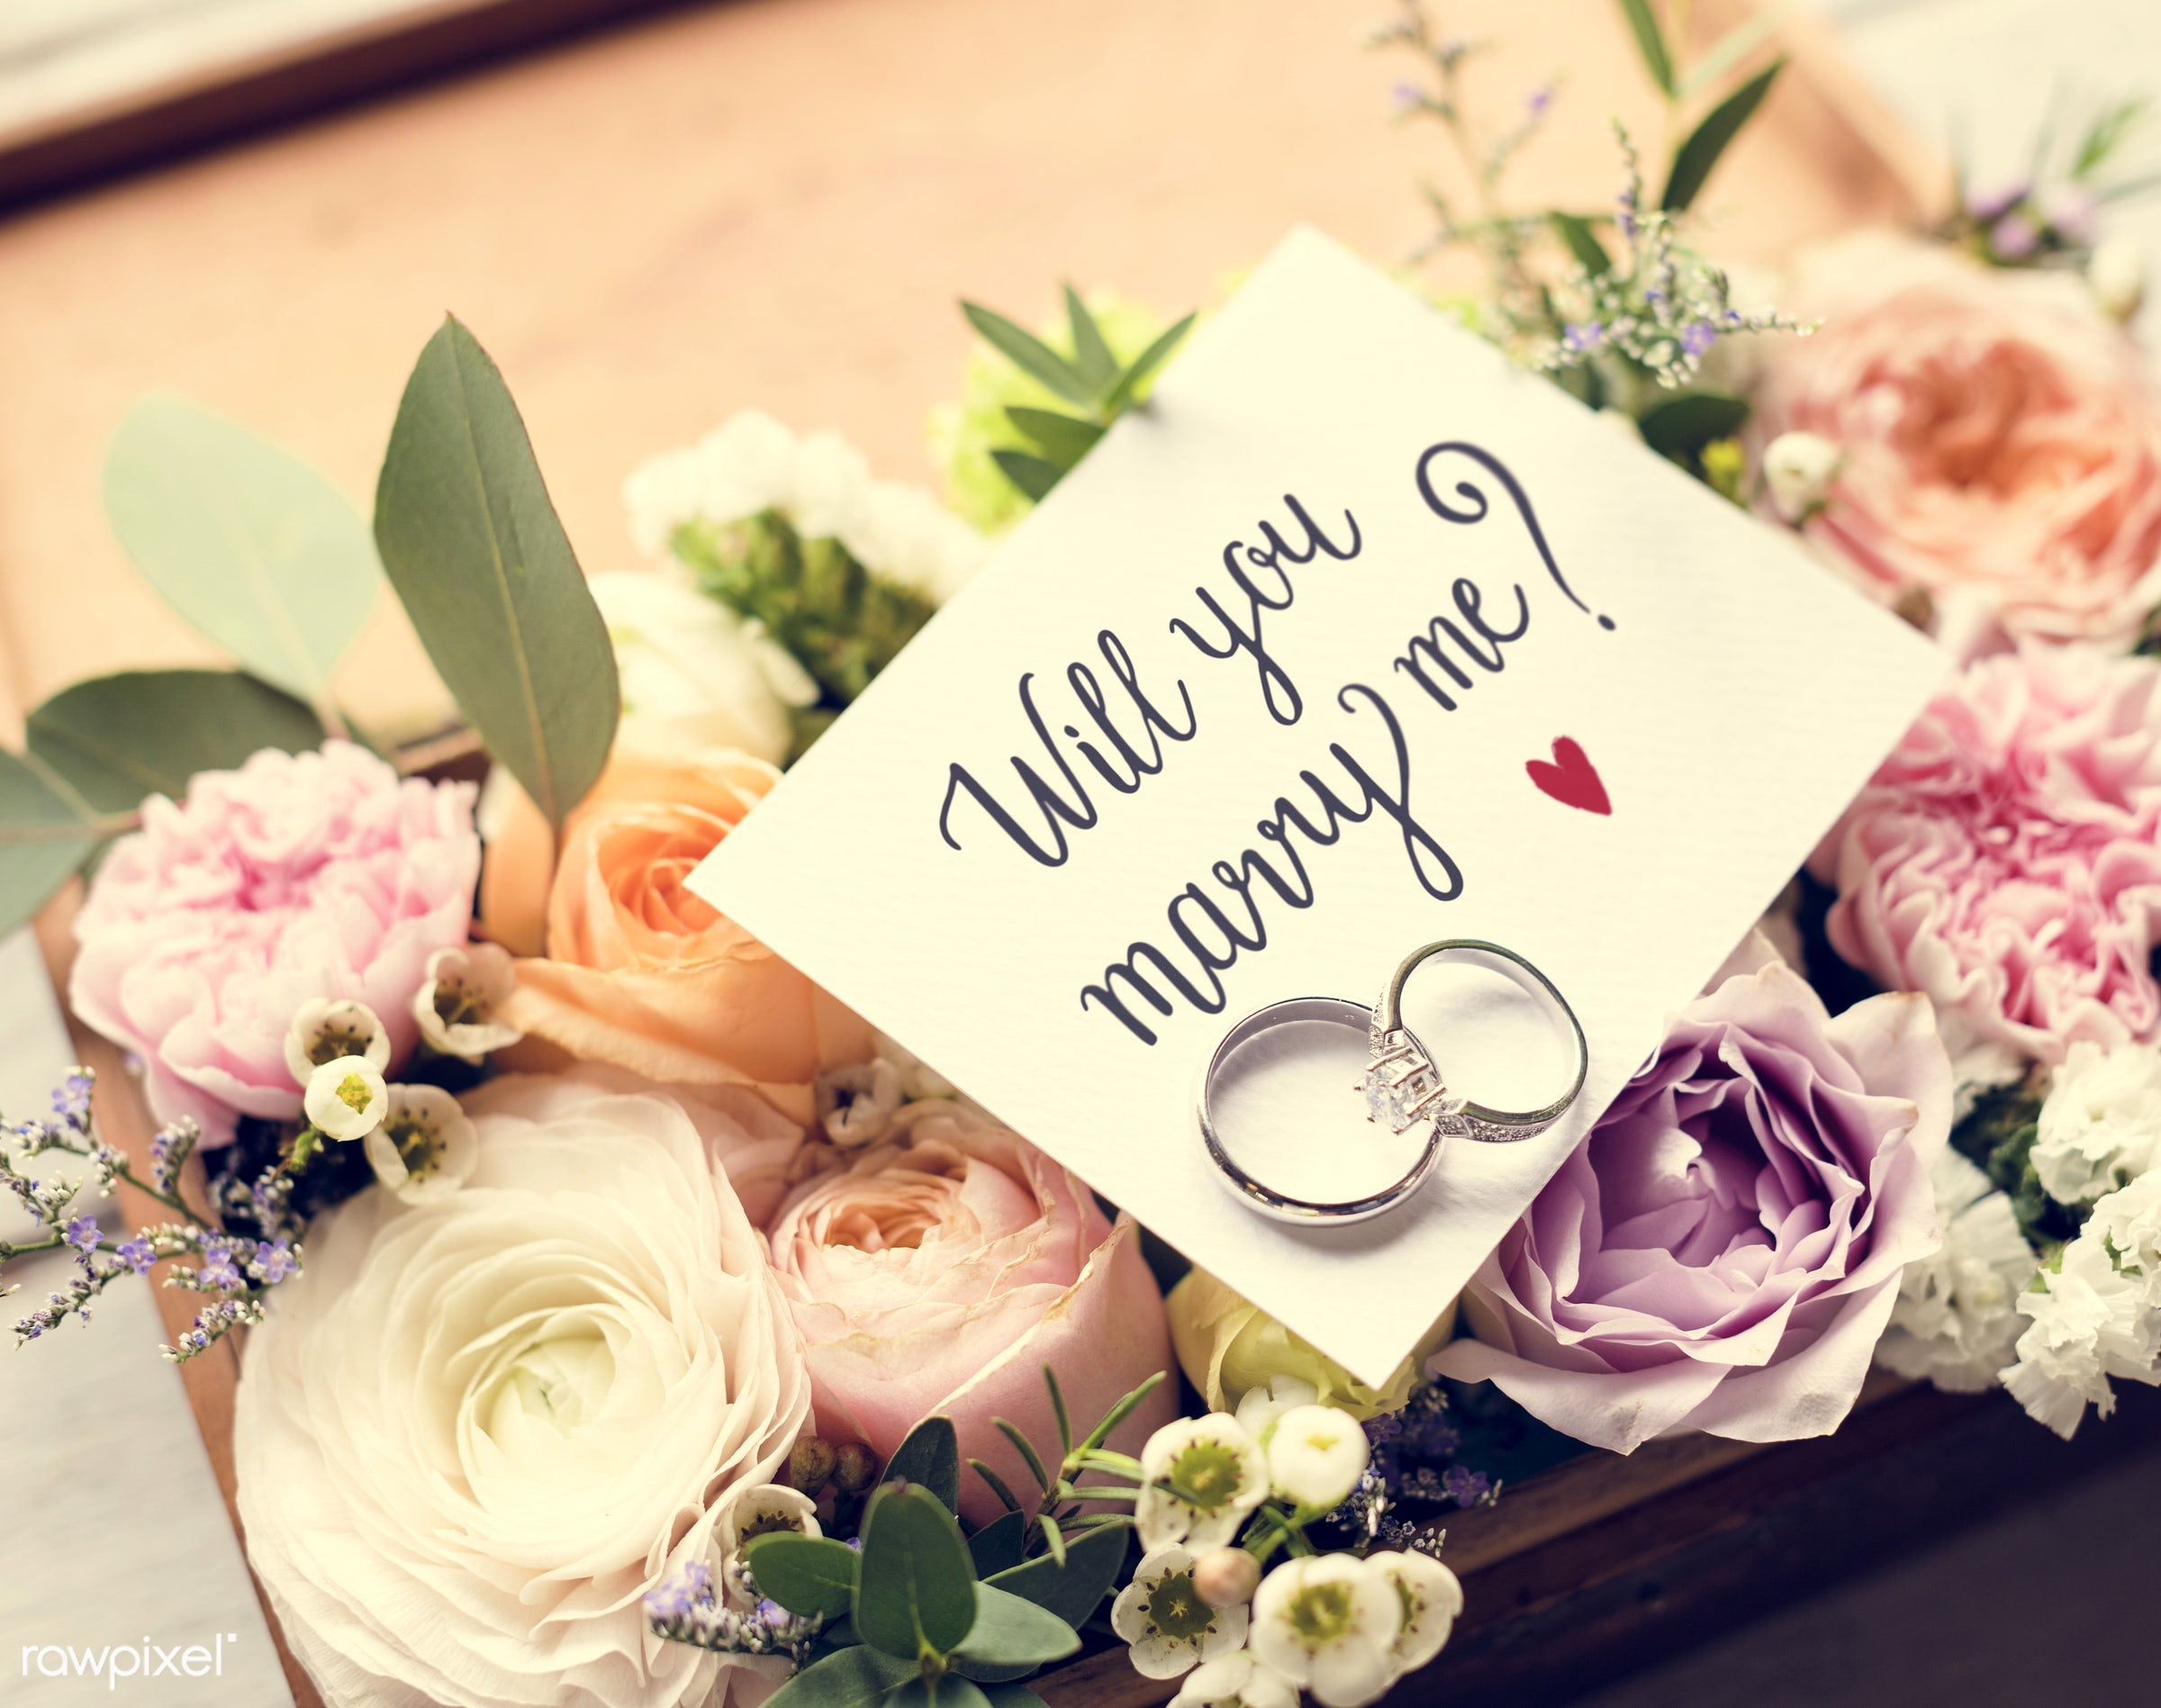 expression, bouquet, nobody, smitten, together, wax flower, love, gather, propose, bush, rings, flowers, cheerful, marry,...